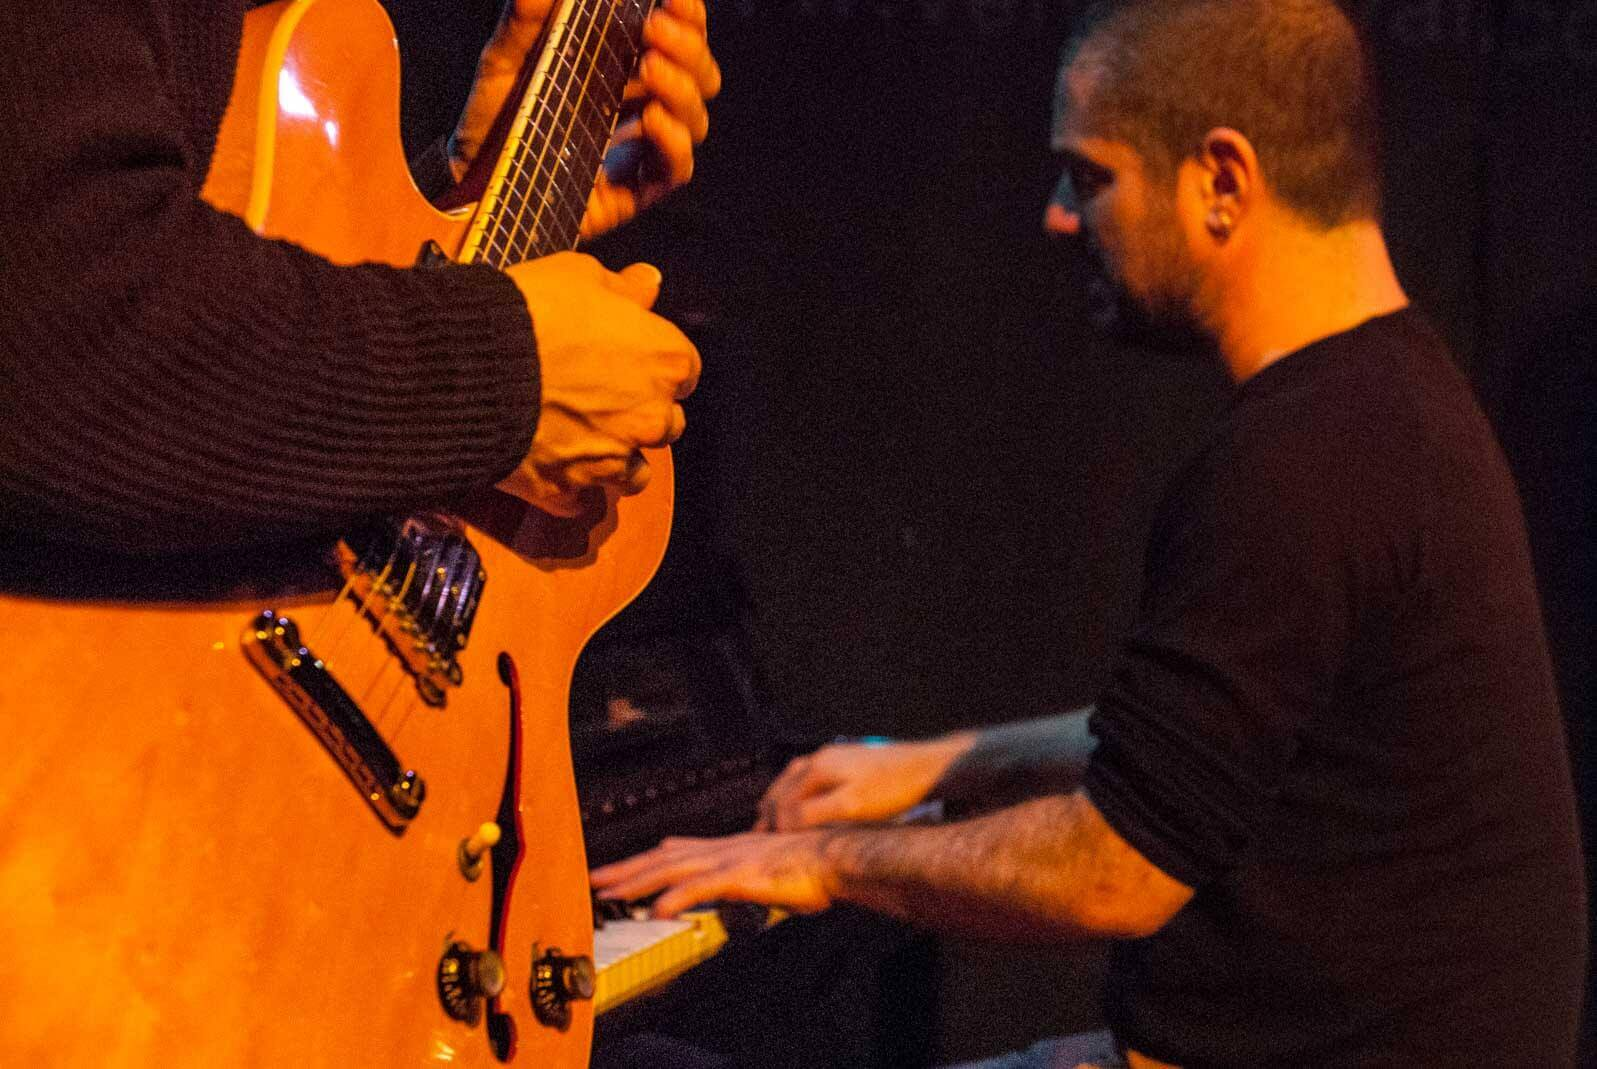 Fotos / Jam Session del 21 marzo 2016